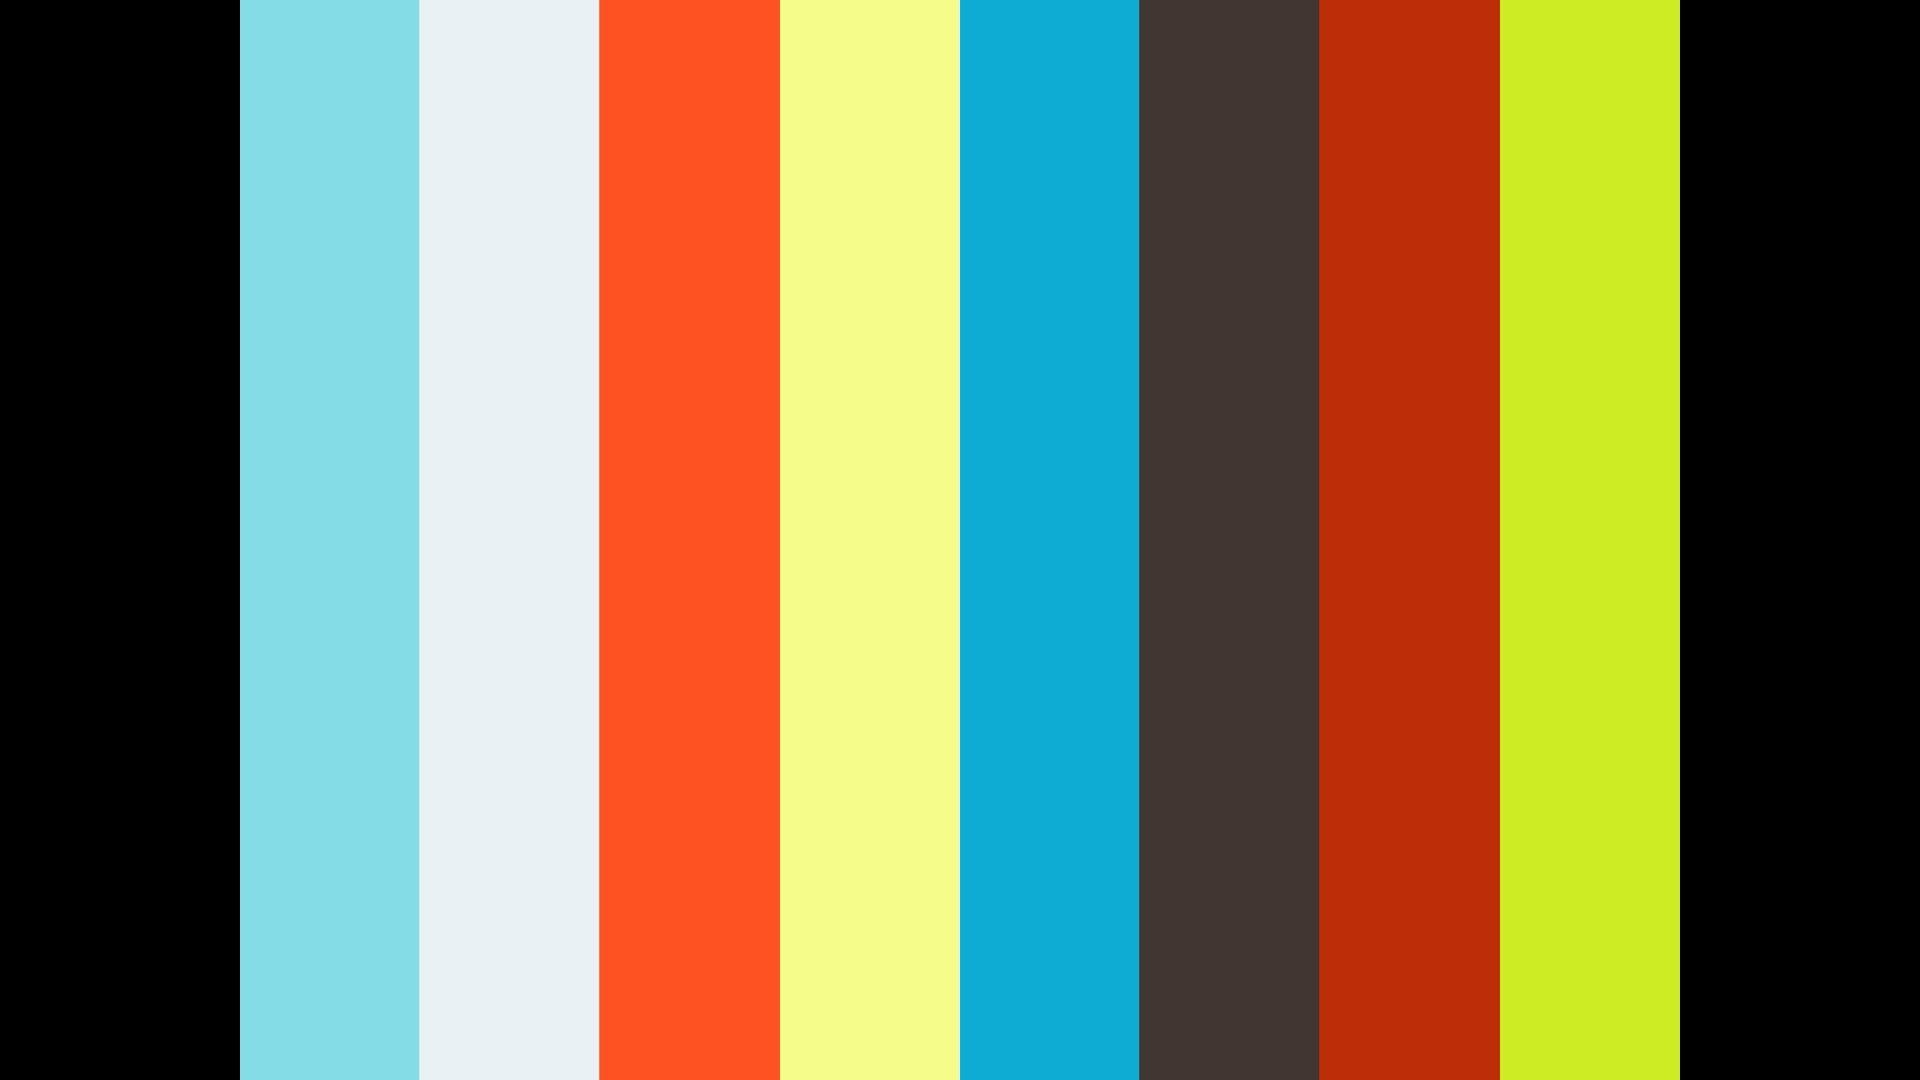 Joffrey West Los Angeles Intensive 2013 - Marine Machines, Choreography by Josie Walsh - Joffrey Ballet School